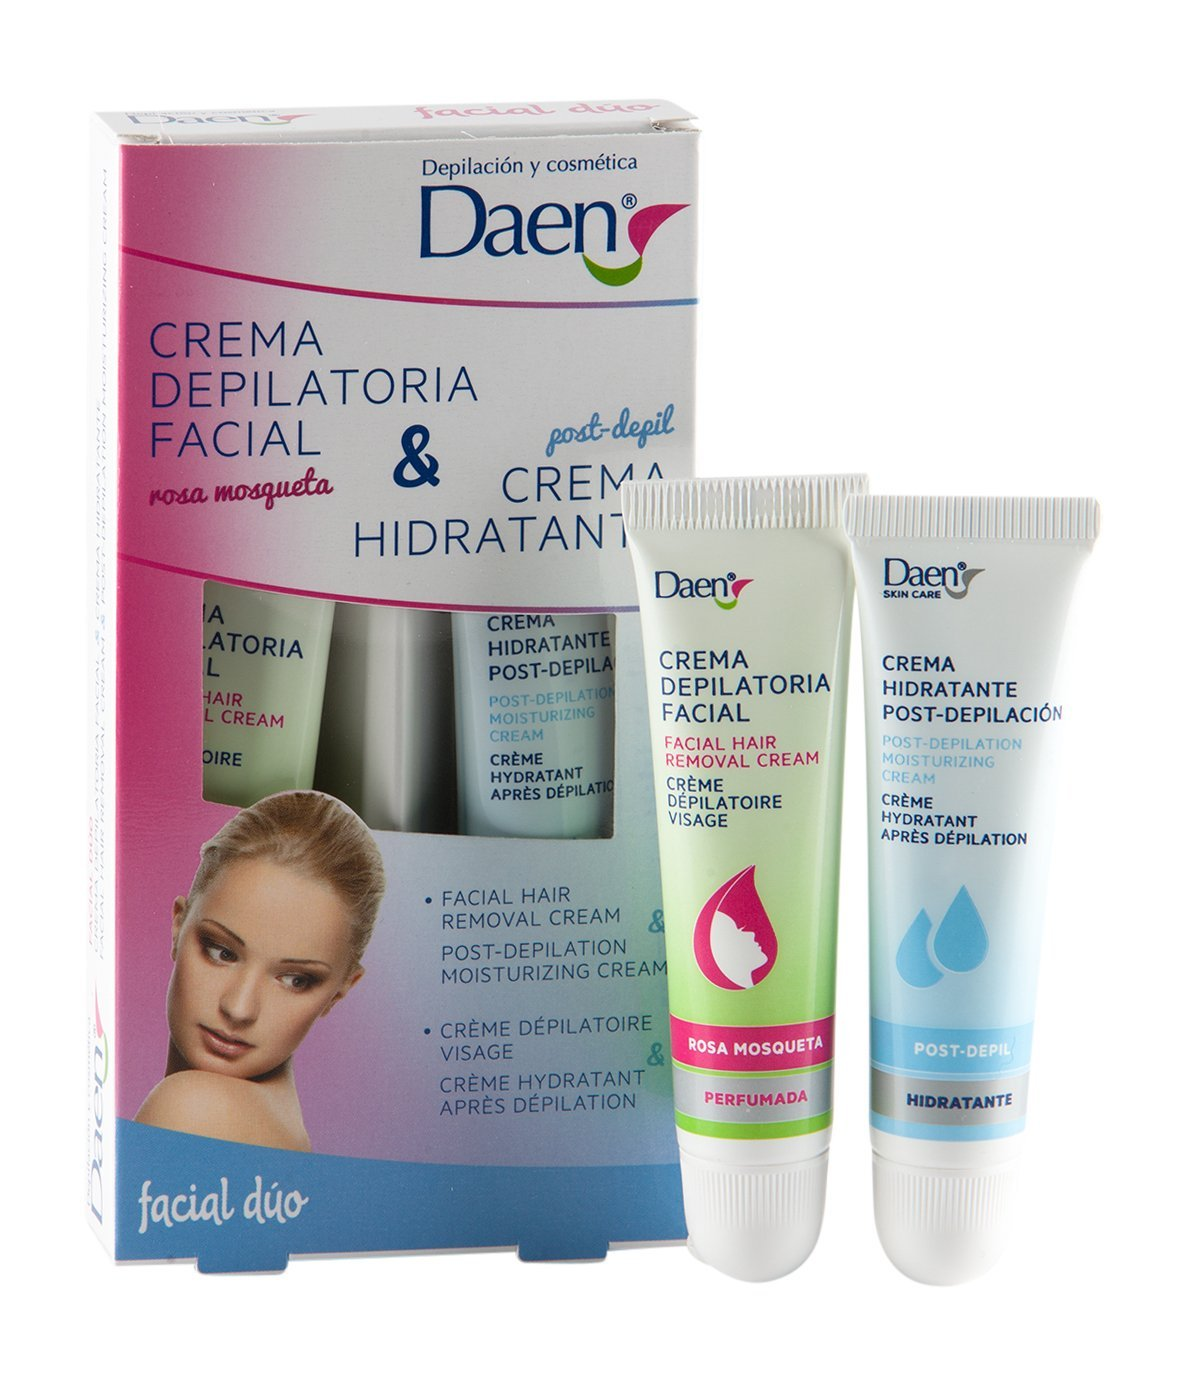 Crema depilatoria facial daen